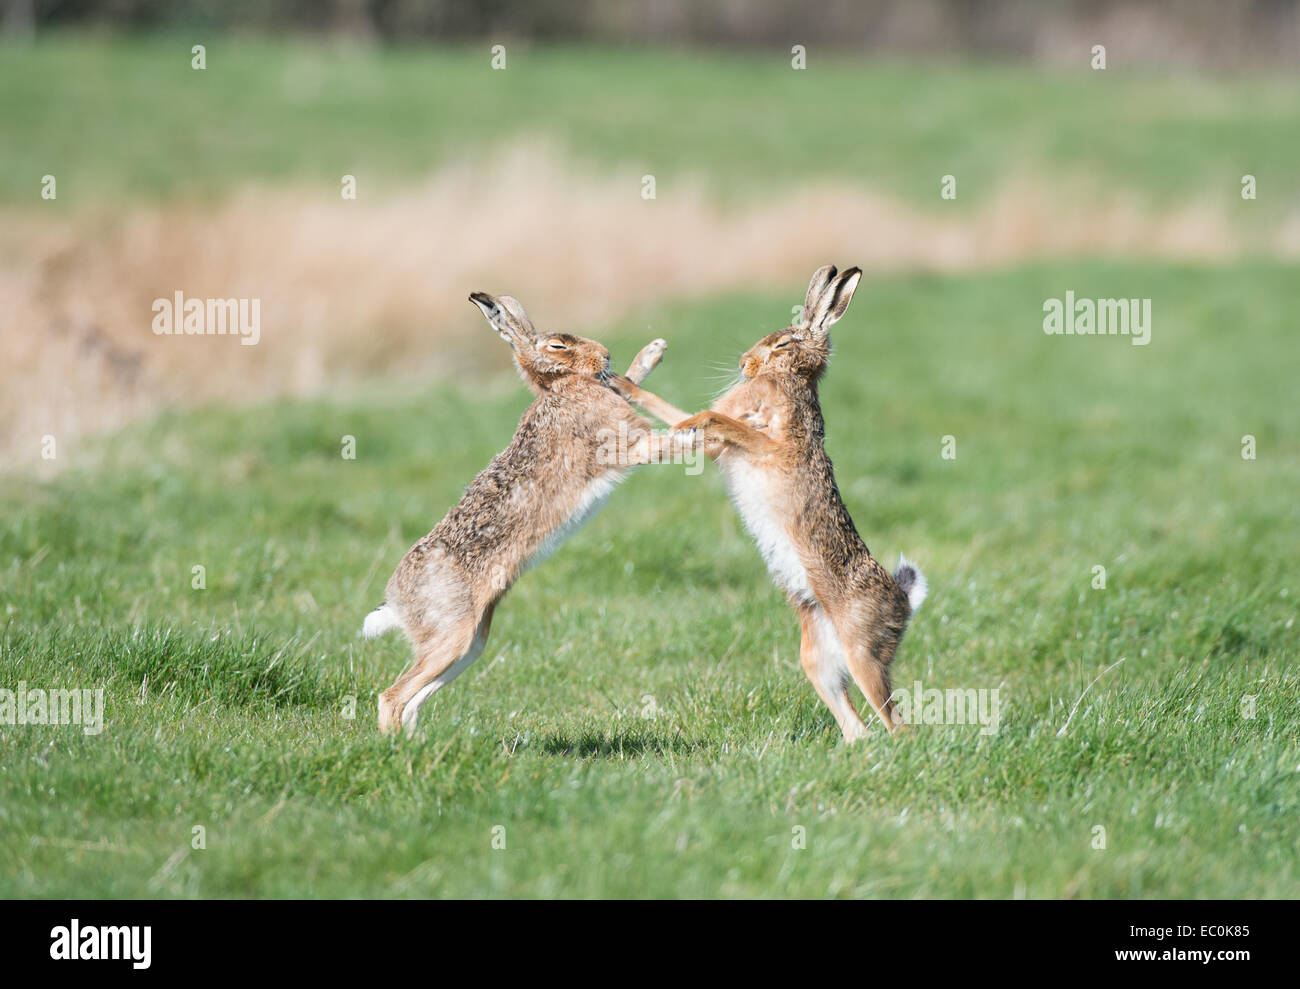 Brown Hares (Lepus europaeus), adult male and female 'boxing' during spring mating season.  East Anglia, - Stock Image